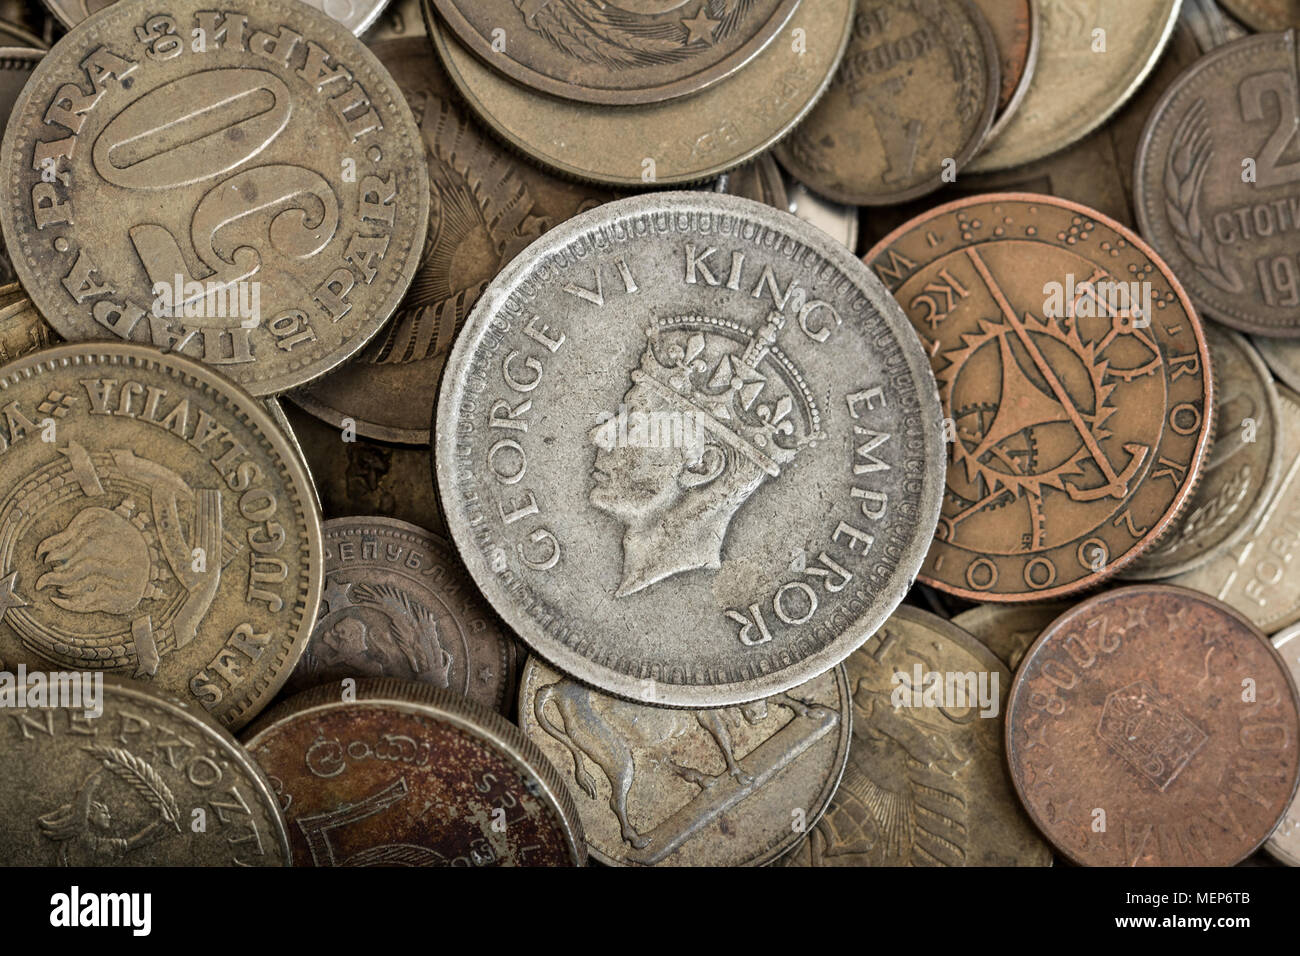 numismatics collection of coins - Stock Image